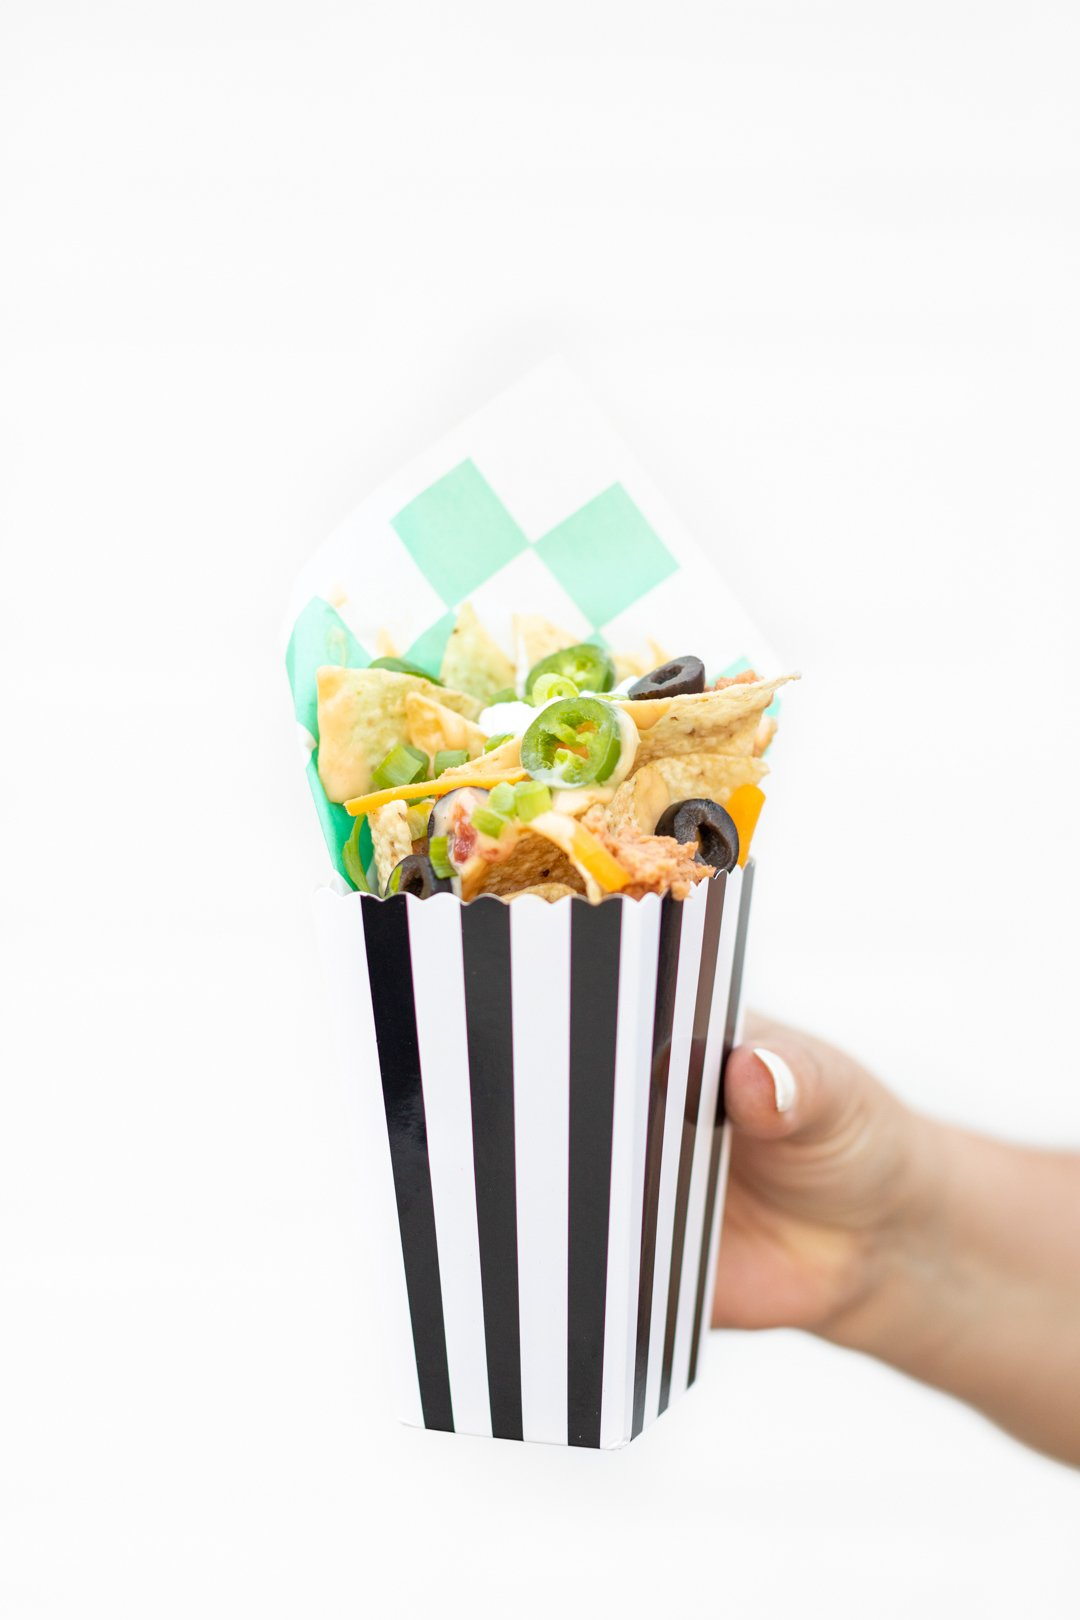 nachos served in a popcorn box